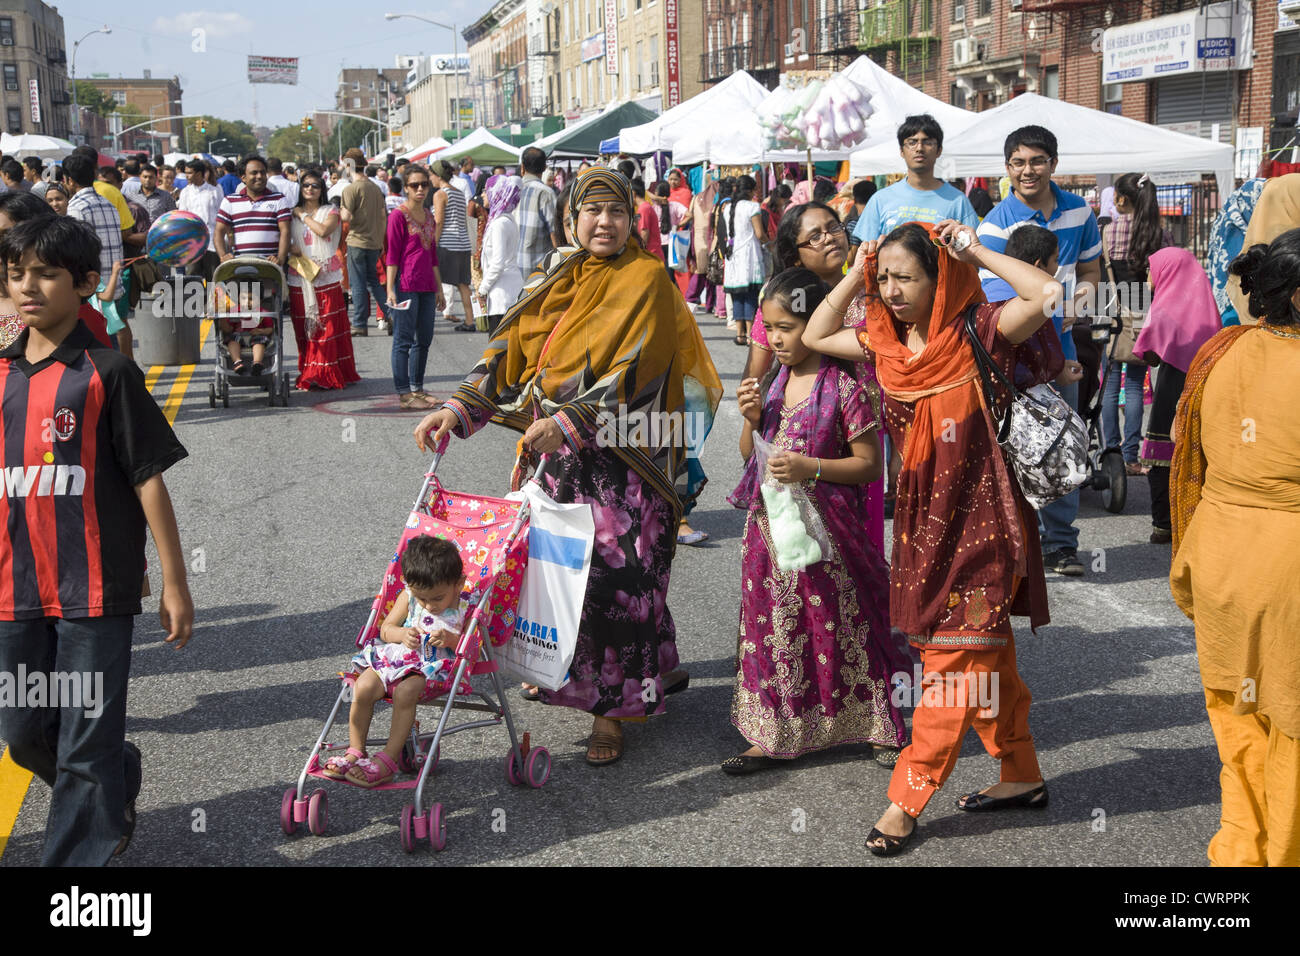 Bangladeshi immigrant community has a street festival in the Kensington section of Brooklyn, NY. - Stock Image